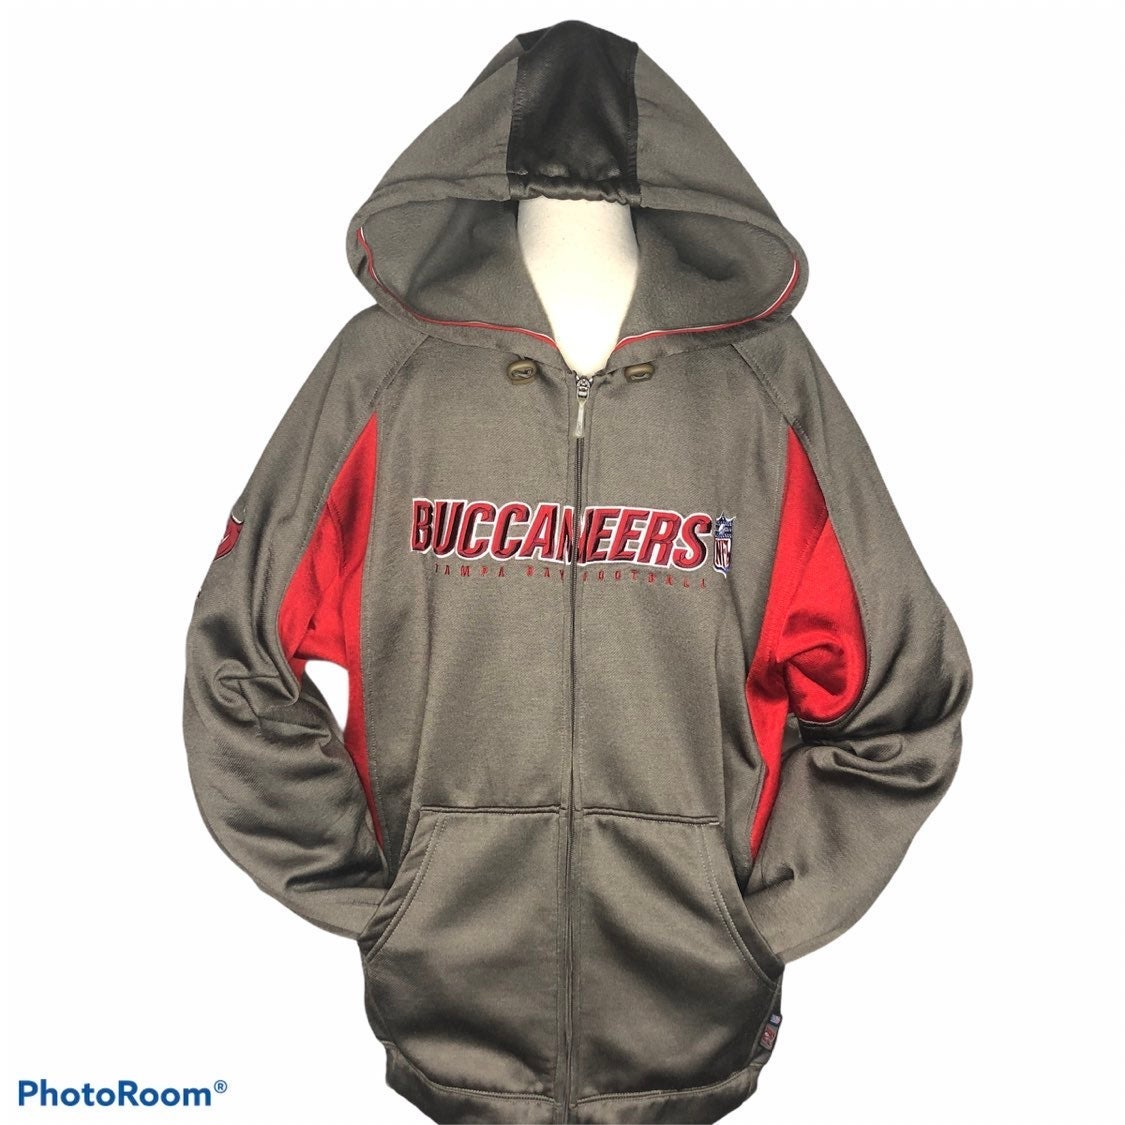 Tampa Bay Buccaneers hooded sweater